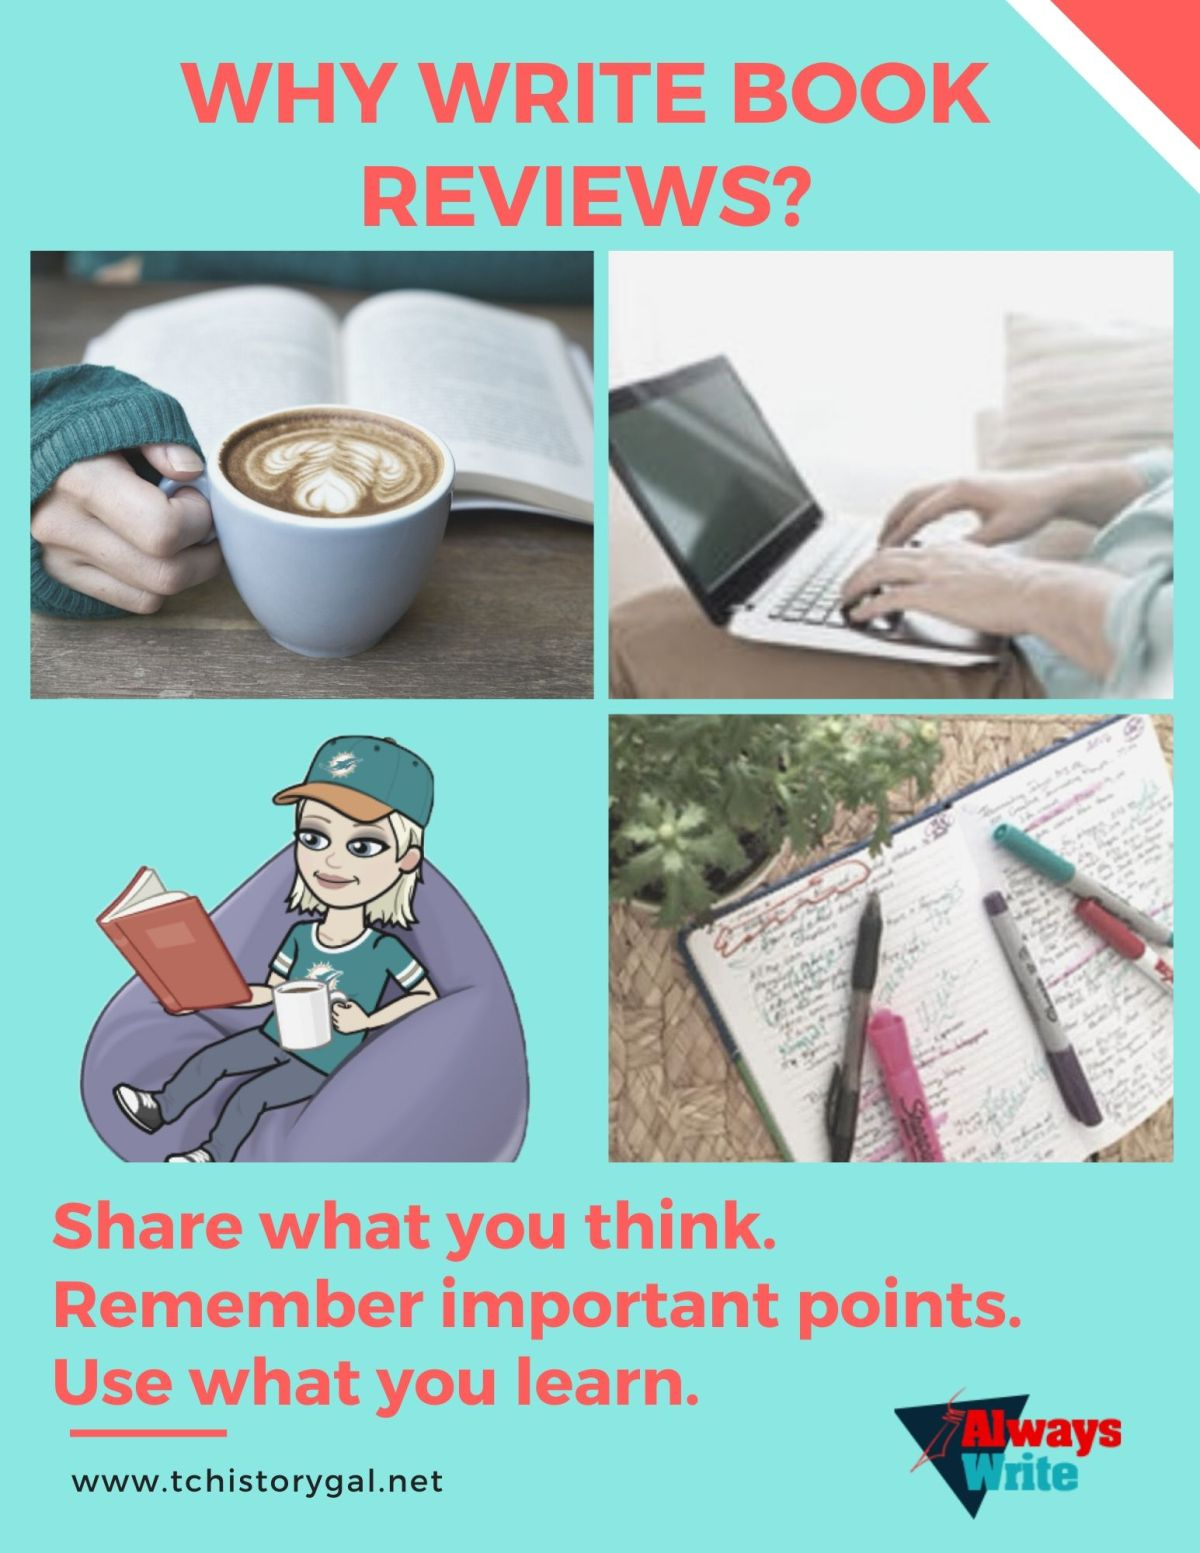 Why write book reviews